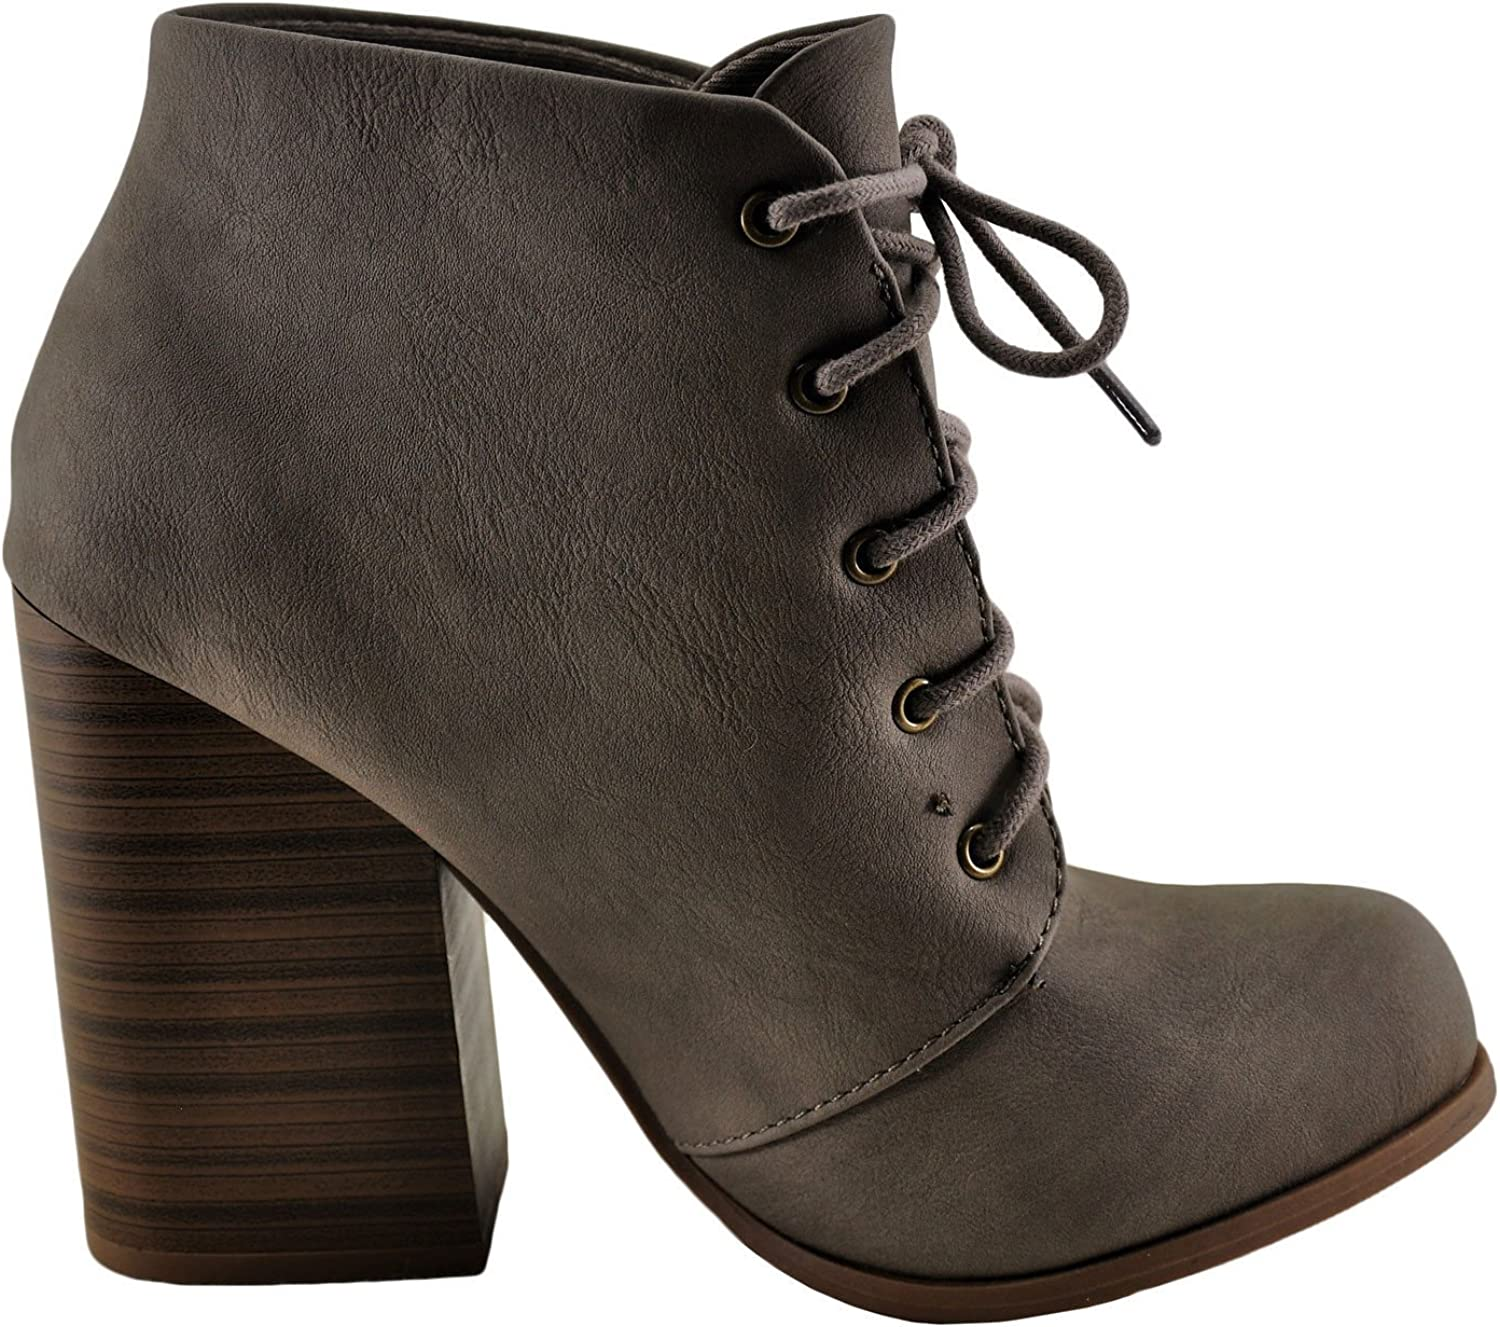 Speed Limit 98 Zilpah Women's Lace Up Stacked Heel Bootie